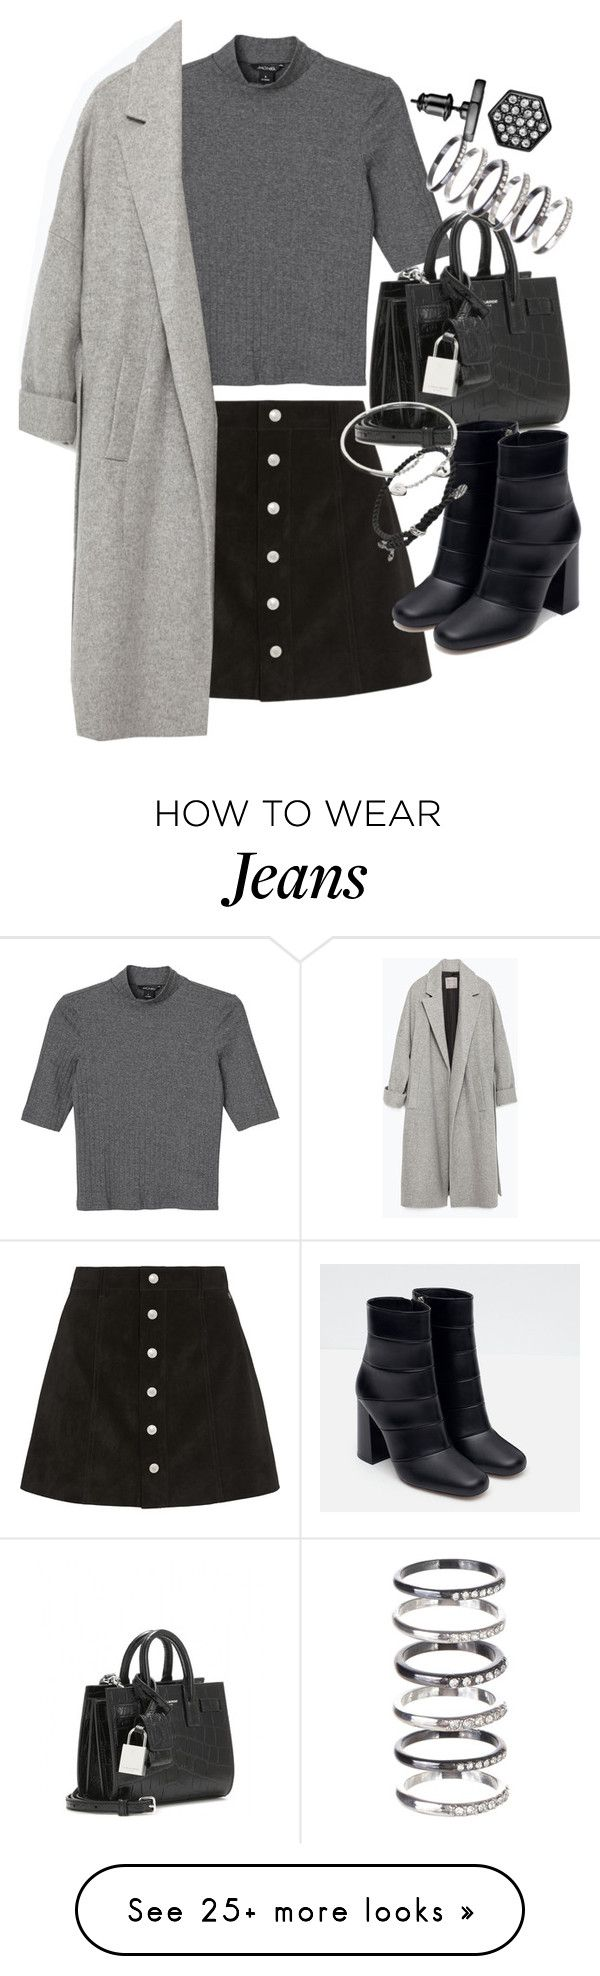 """""""Untitled #19332"""" by florencia95 on Polyvore featuring AG Adriano Goldschmied, Monki, Zara, Yves Saint Laurent, M.N.G, David Yurman, Cartier and Simply Vera"""